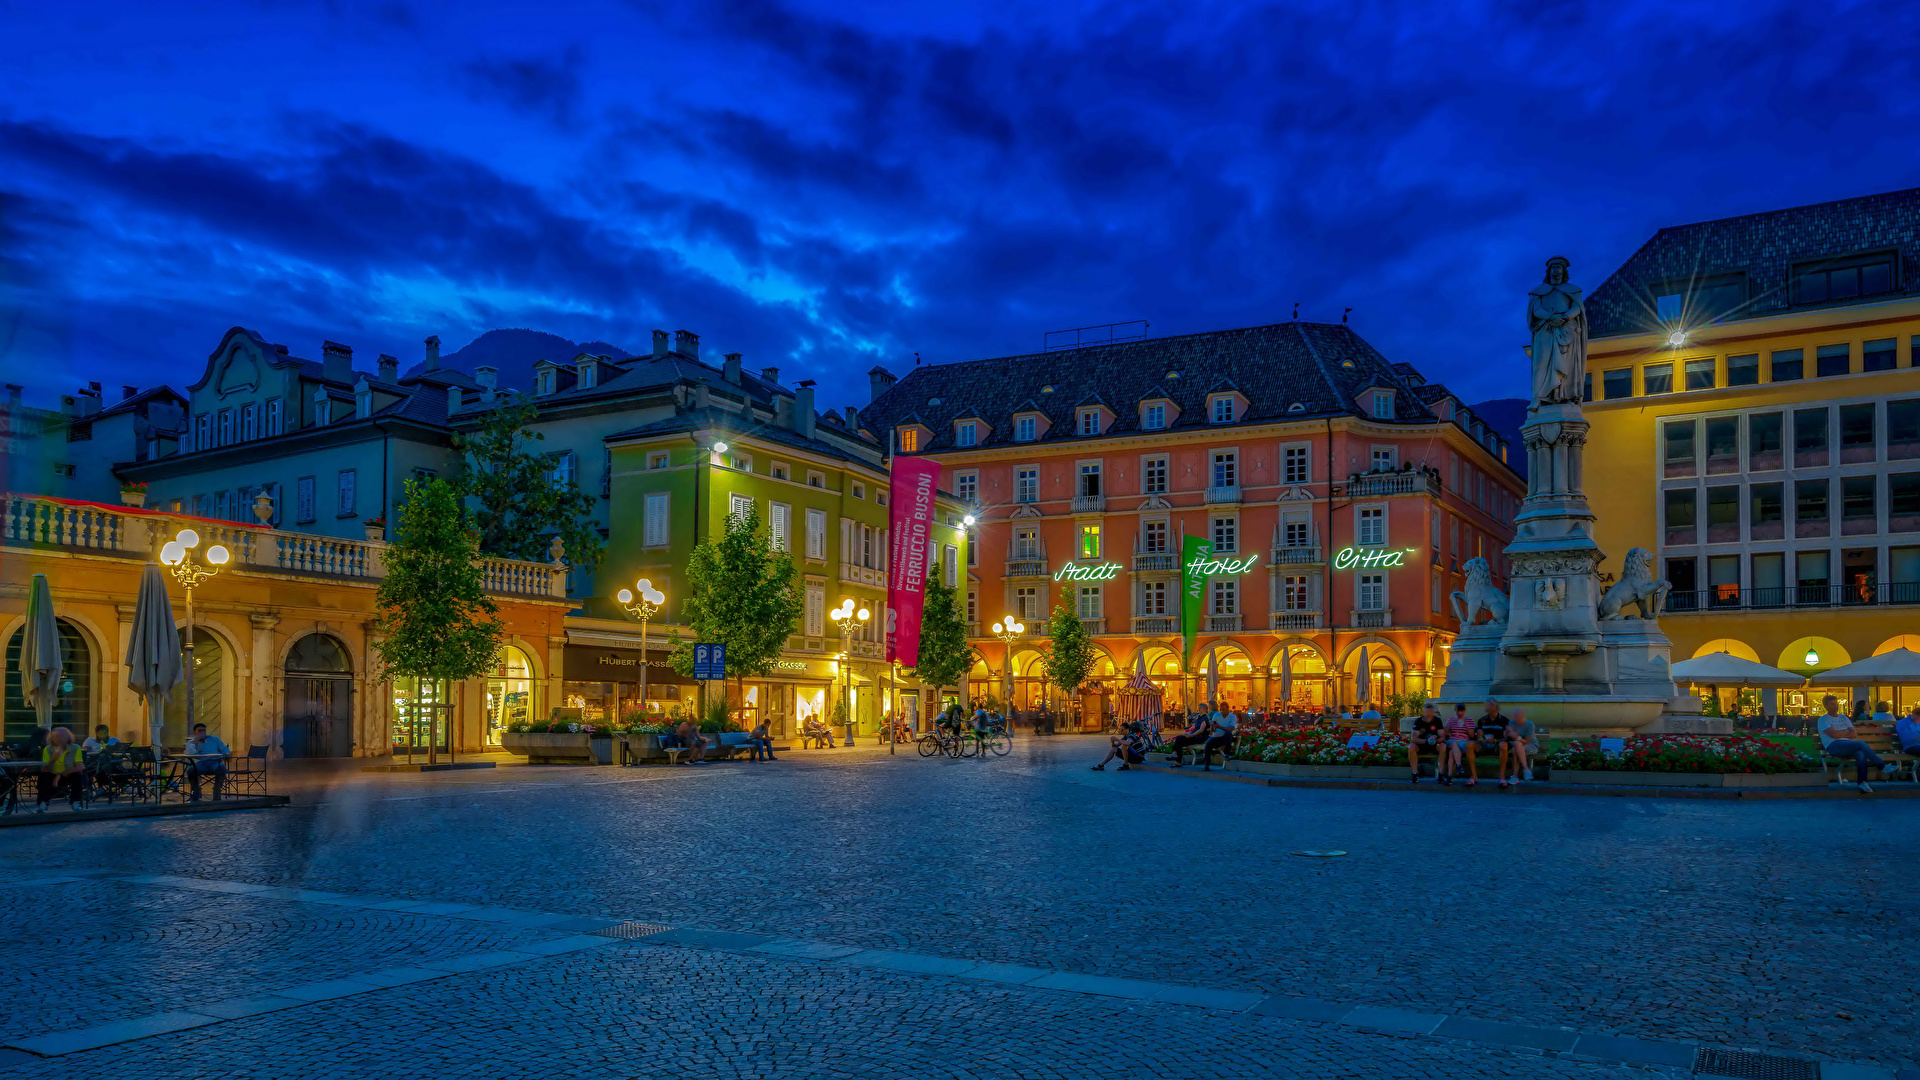 Desktop Wallpapers Italy Monuments Town square Bolzano 1920x1080 1920x1080